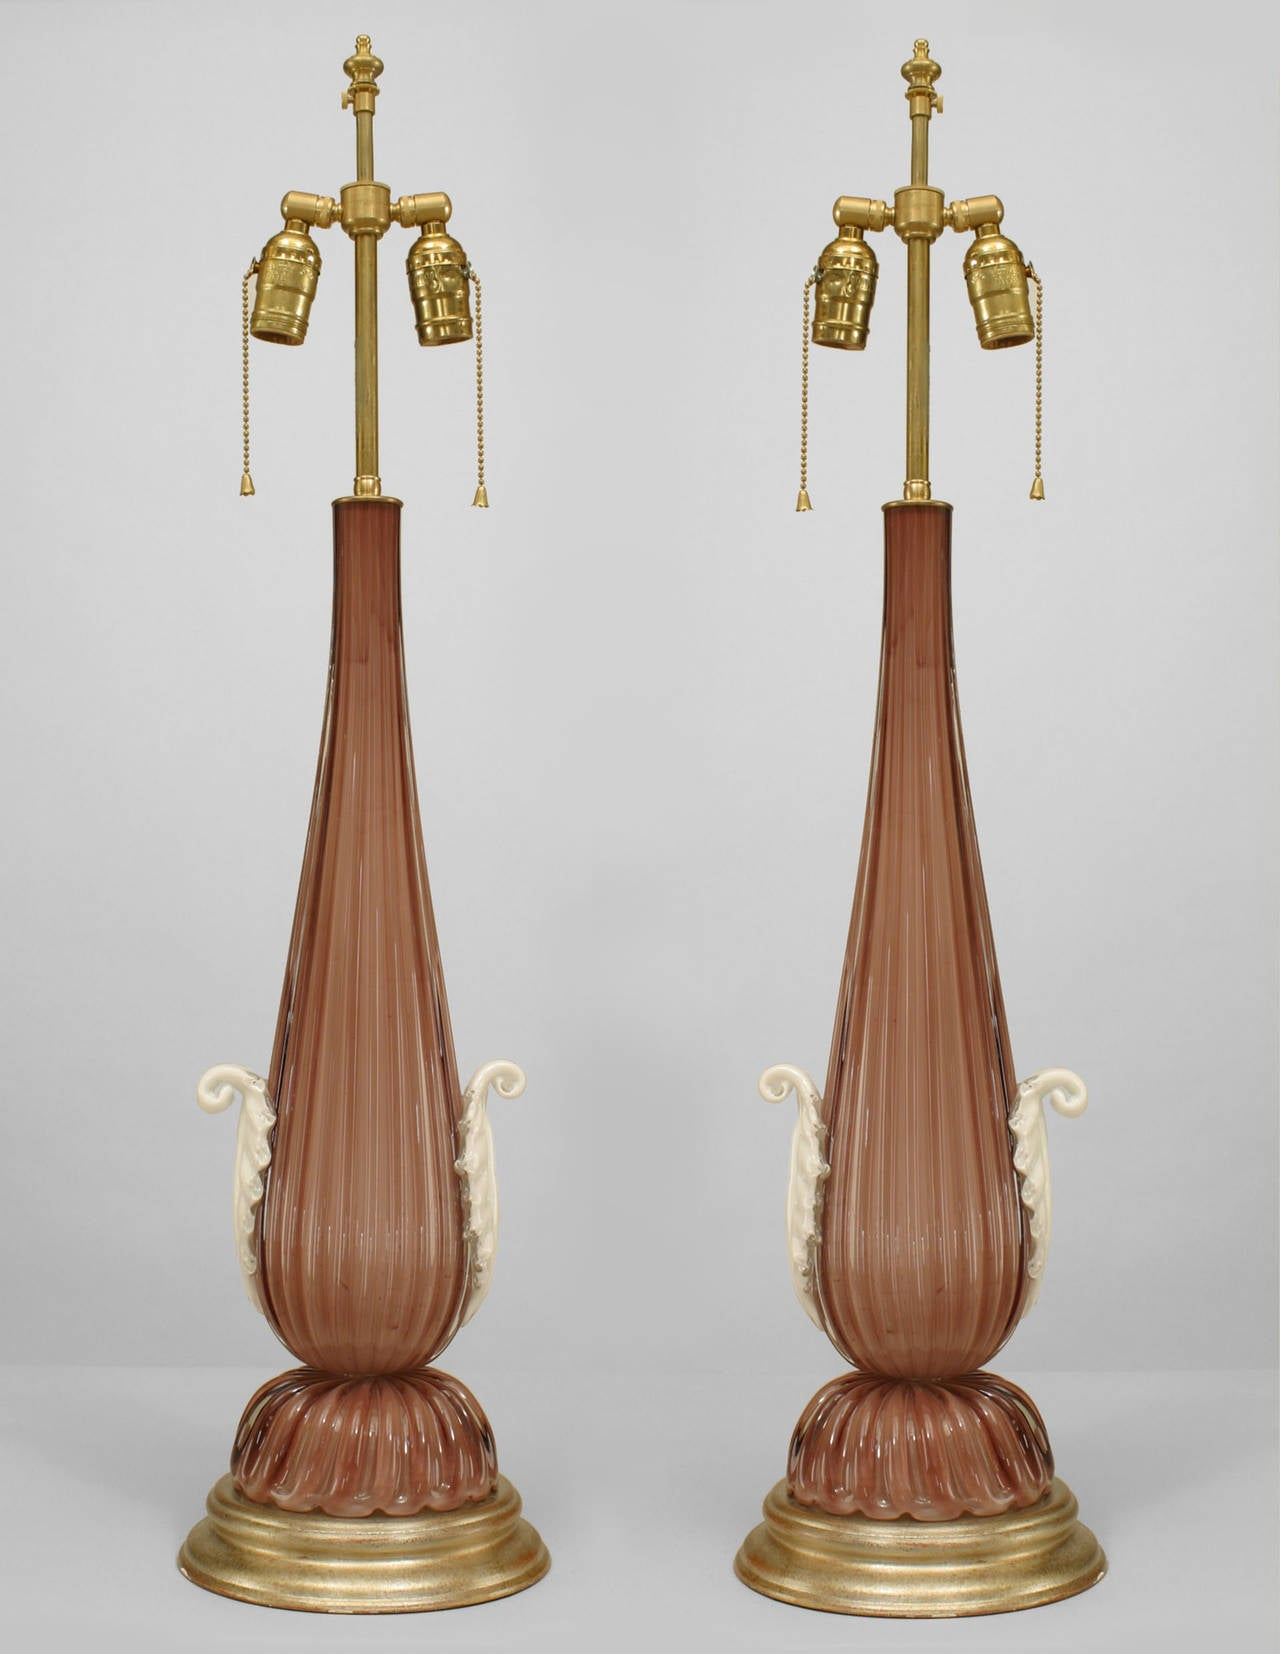 Pair of Italian Murano amethyst overlay glass table lamps with fluted tapered forms on scalloped bases with applied white glass leaf sides (modern).